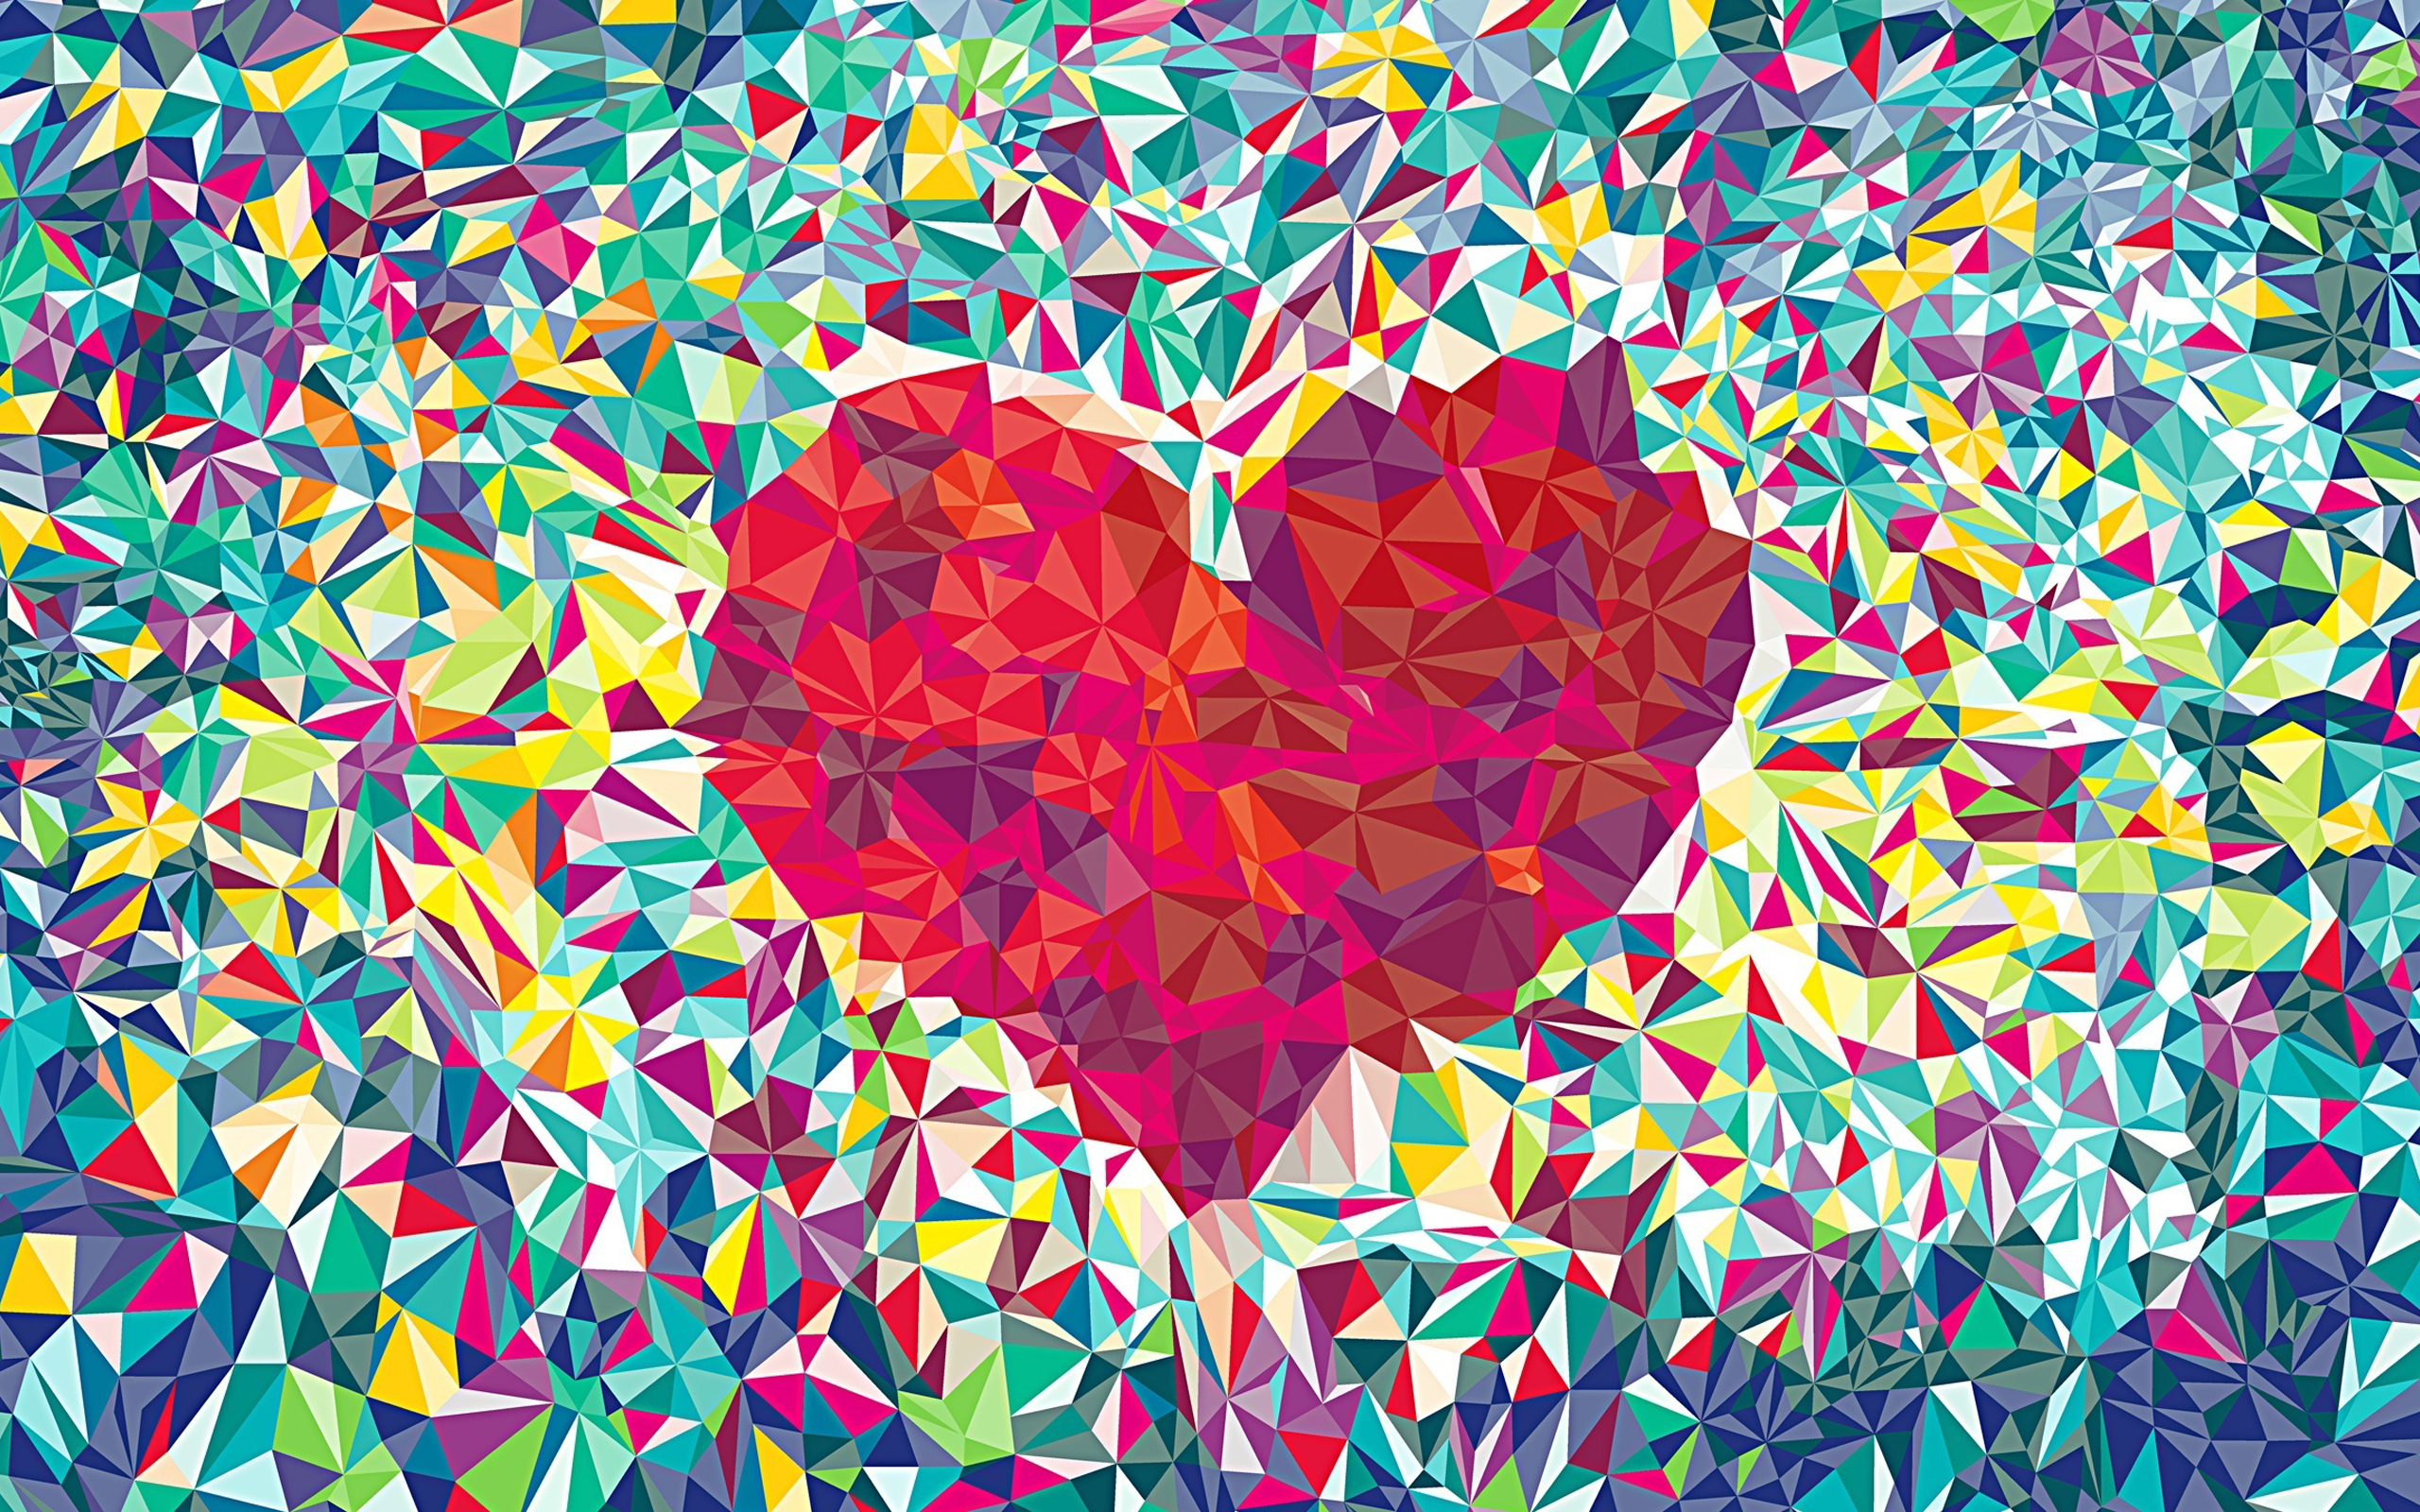 Geometric Heart Abstract Wallpapers 1238.56 Kb